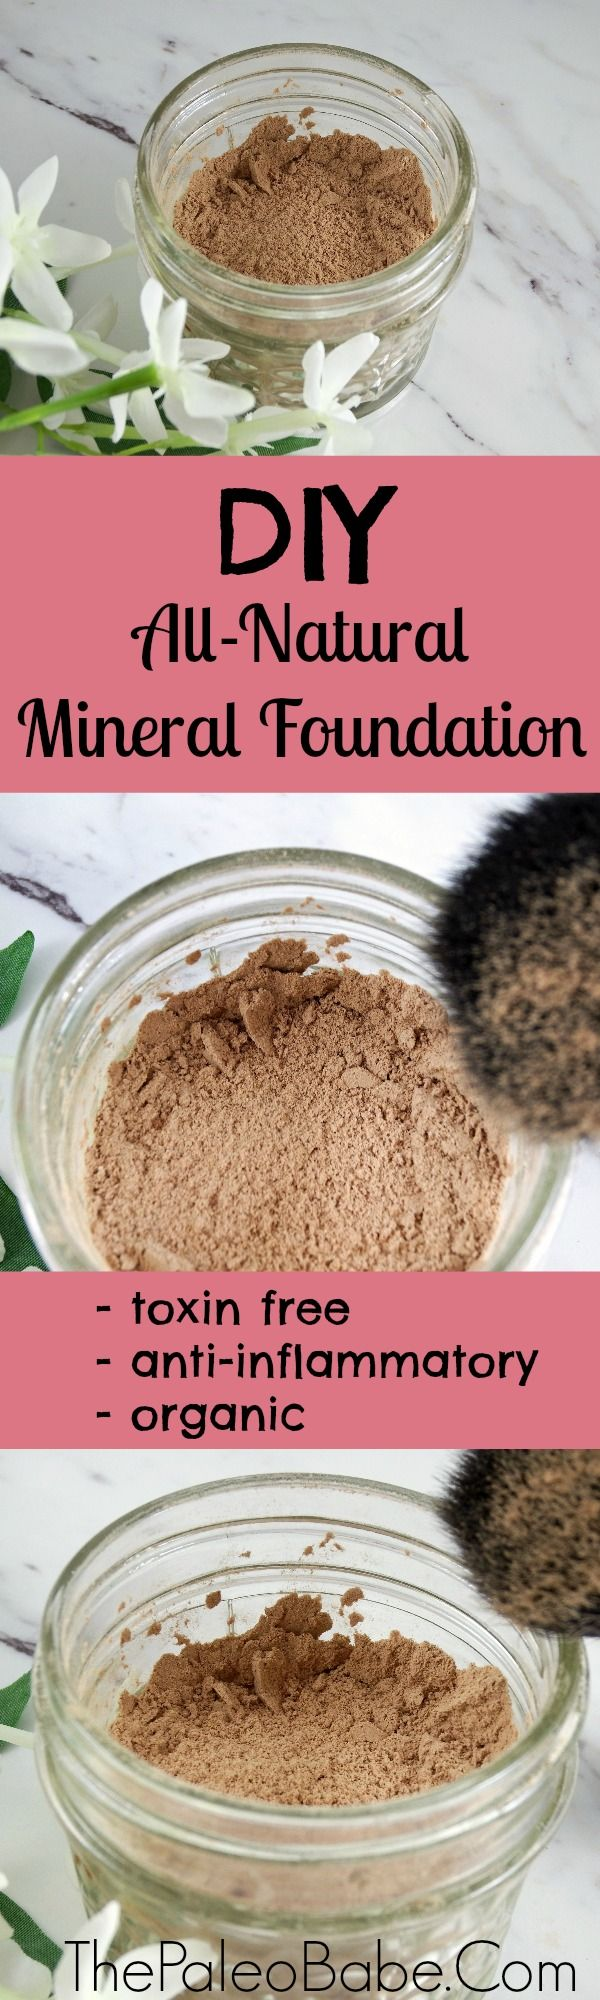 """Hey everyone! Today I want to share a special recipe with you… a recipe that you won't be eating! (Gasp!) Yes, I will be sharing with you a recipe for your very own custom DIY homemade """"mineral"""" foundation. Since my cancer scare last year, I've been very serious about eliminating toxins from my life as much as possible. And while I can't really control what toxins I ingest through the air I breathe and the water I drink, I do have control over what I put on my skin. I was terrified to learn…"""